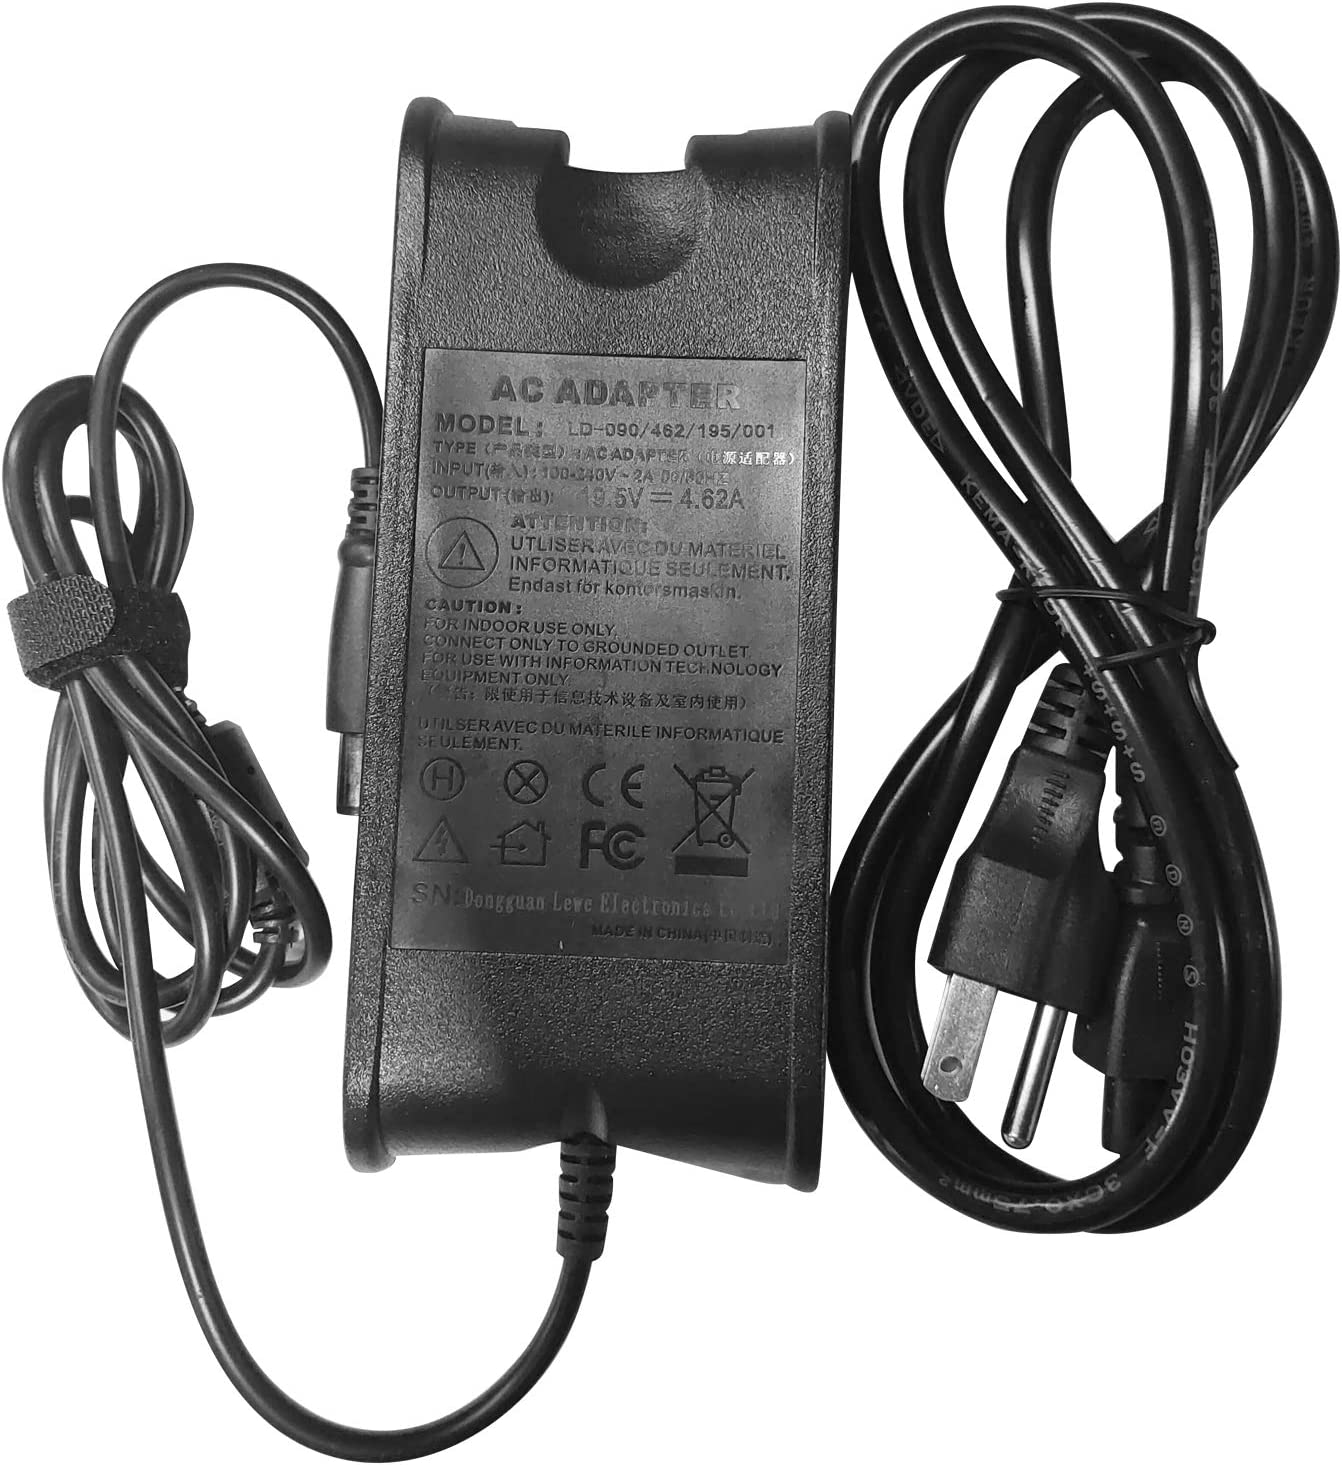 90W 19.5V 4.62A AC Adapter Charger for Dell Inspiron 1525 6000 6400 Dell Latitude Computers 14 (1464) 15 (1525) 14R (N4010) 15R (N5010) LA65NM130 PA-10 + Cord